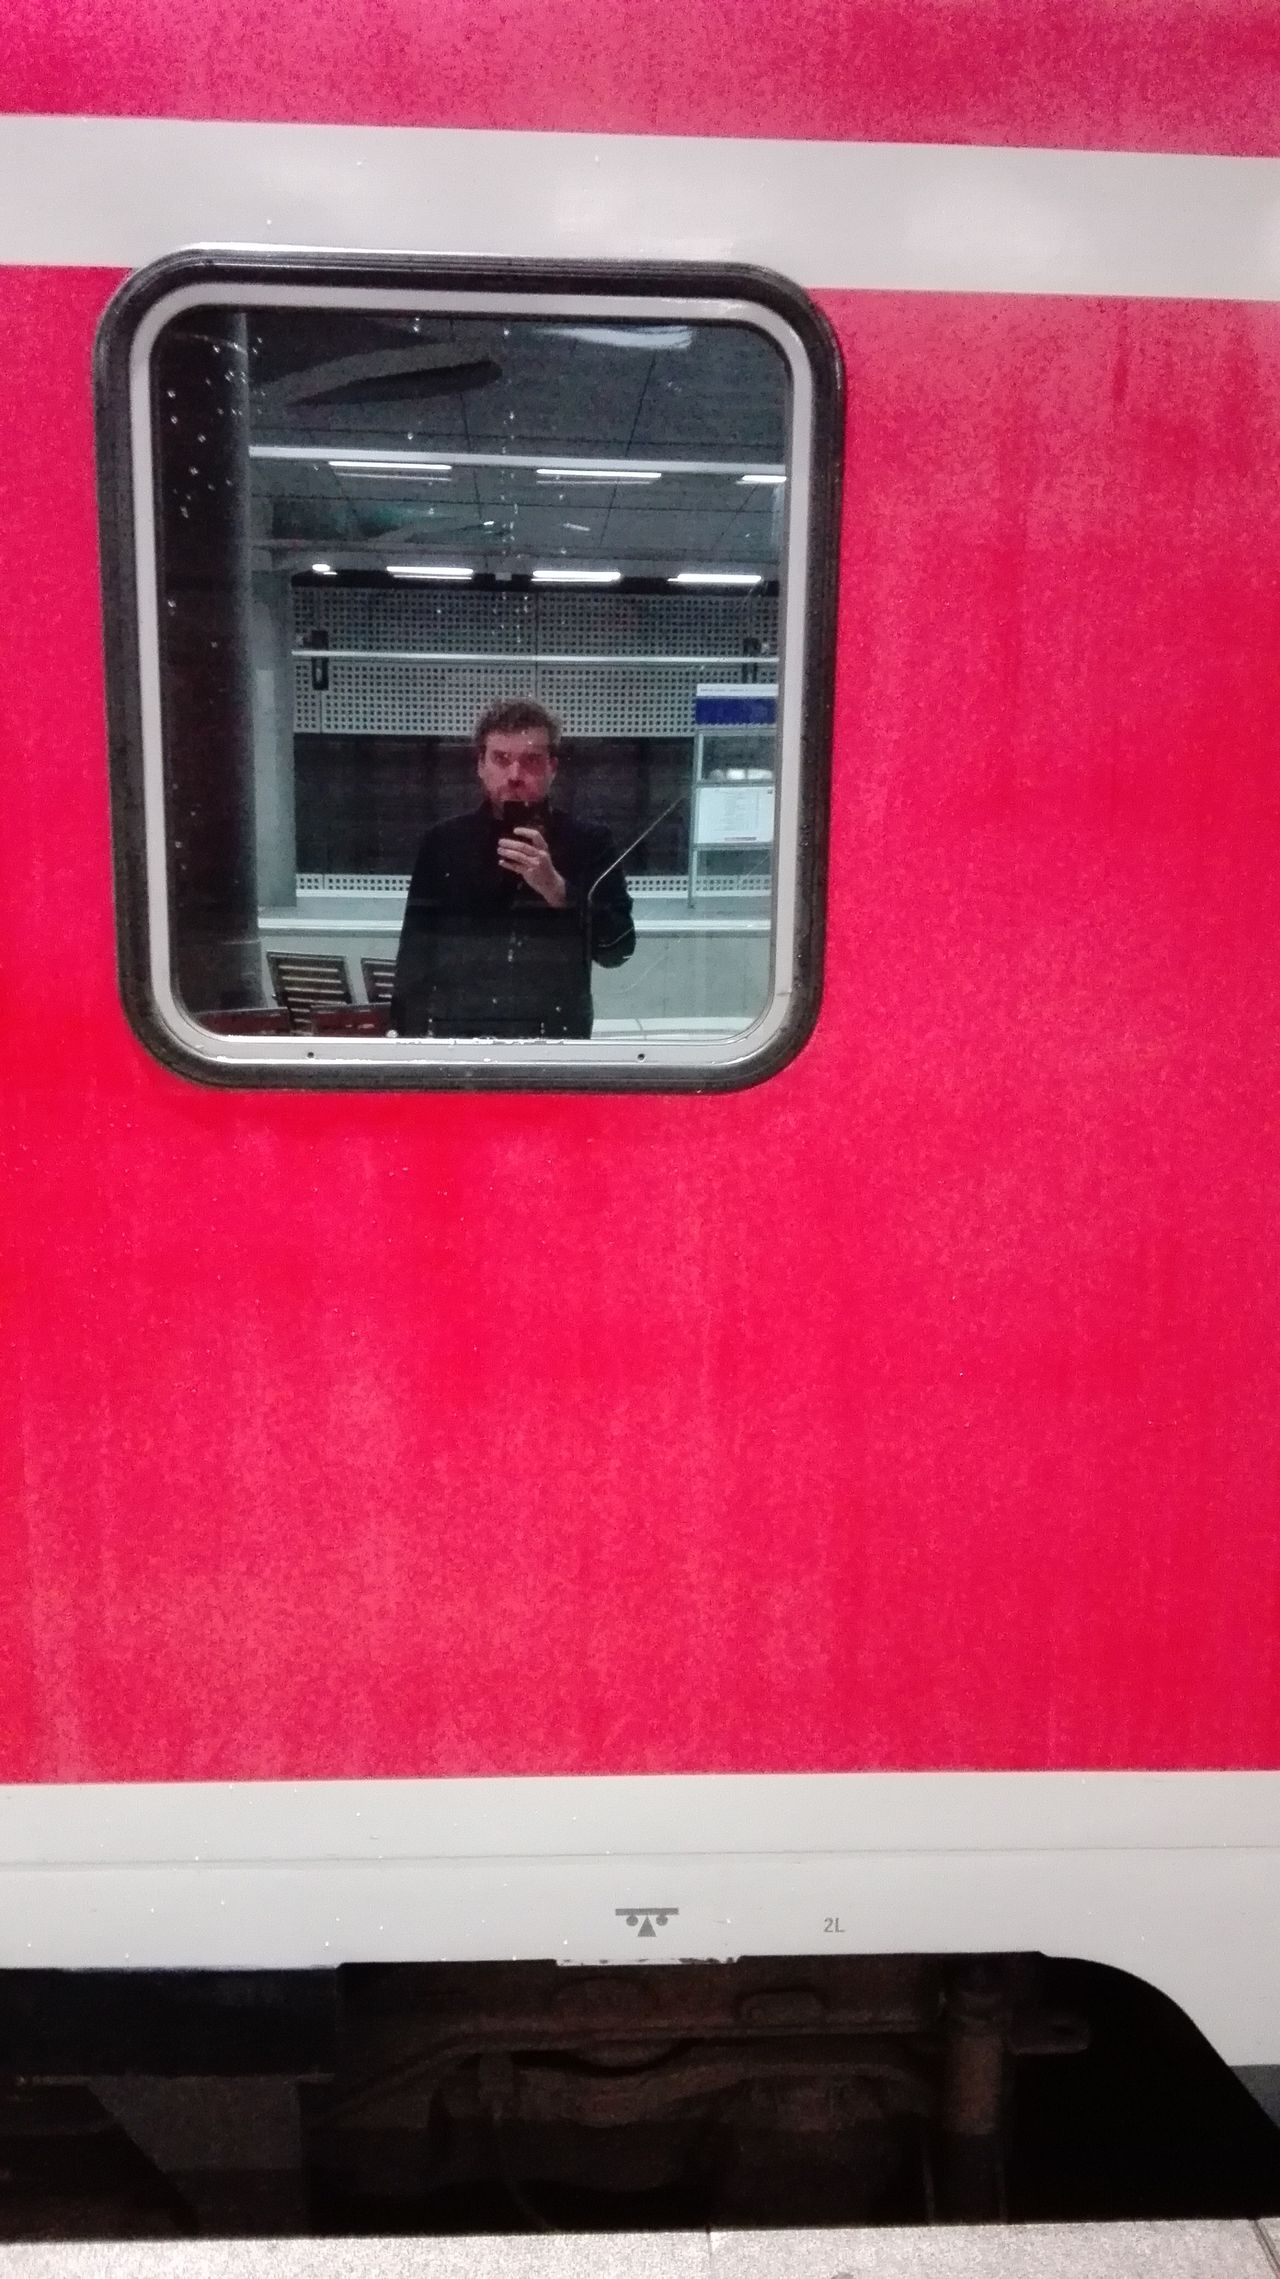 Me, myself and I Berlin Hauptbahnhof Red Public Transportation One Person Selfıe Color Traveling Wanderlust POTD Picoftheday Photooftheday Window Itsme